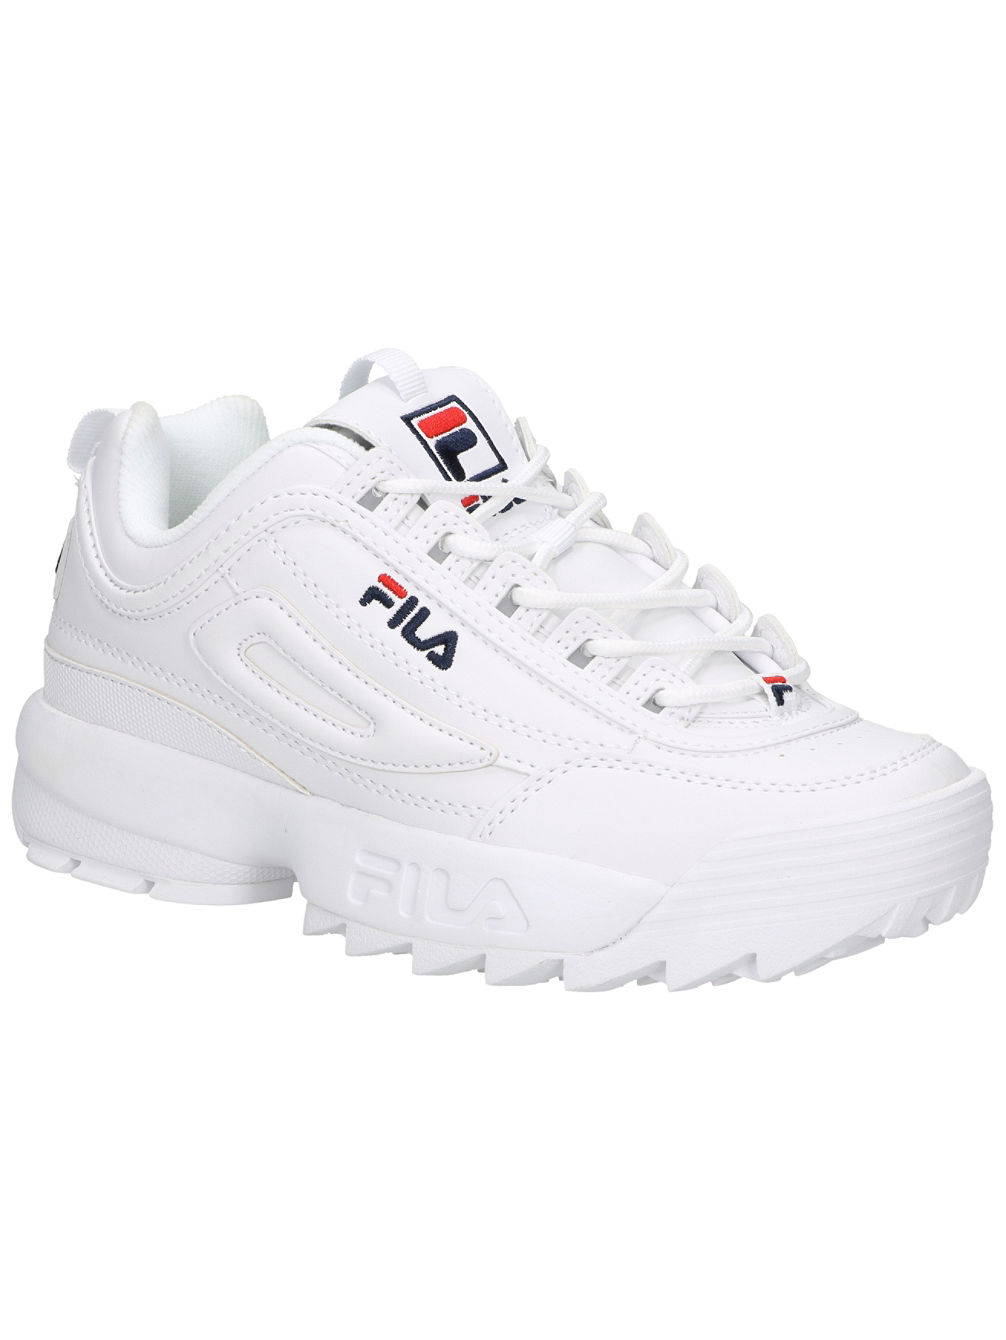 a4725e8d Buy Fila Disruptor Low Sneakers online at Blue Tomato